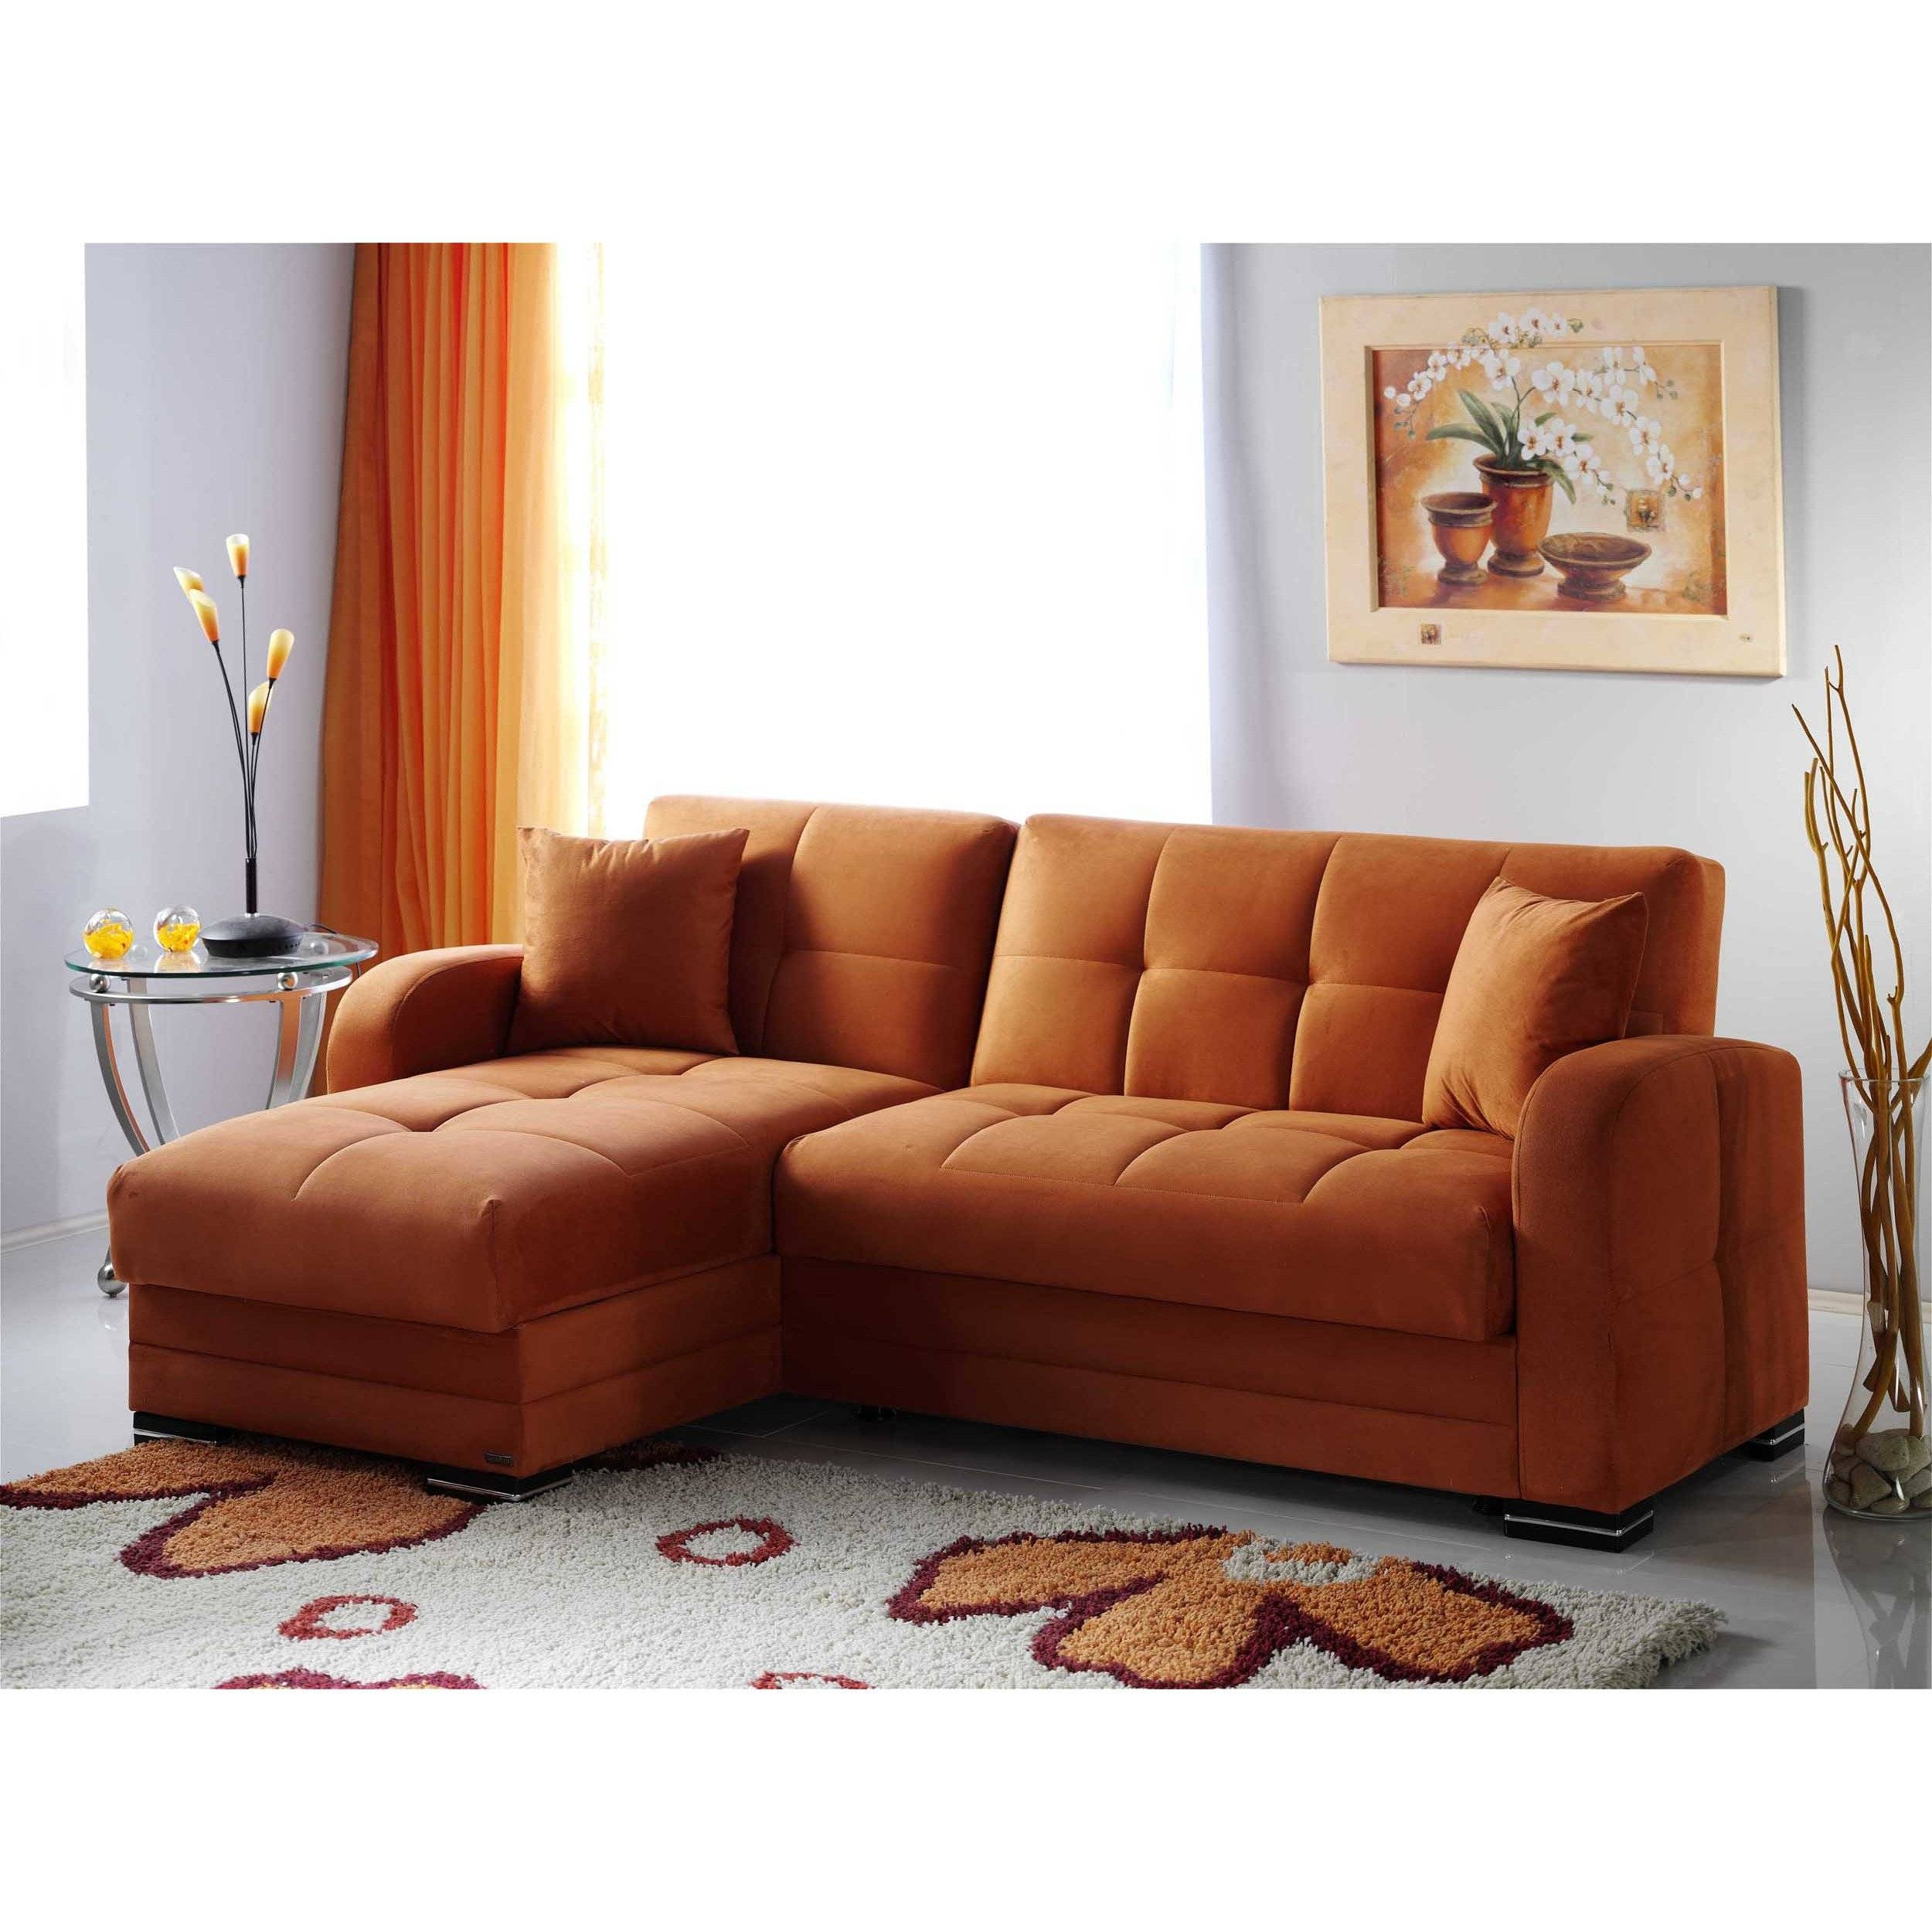 Kubo Rainbow Orange Sectional Sofasunset Throughout Orange Sectional Sofa (View 22 of 30)